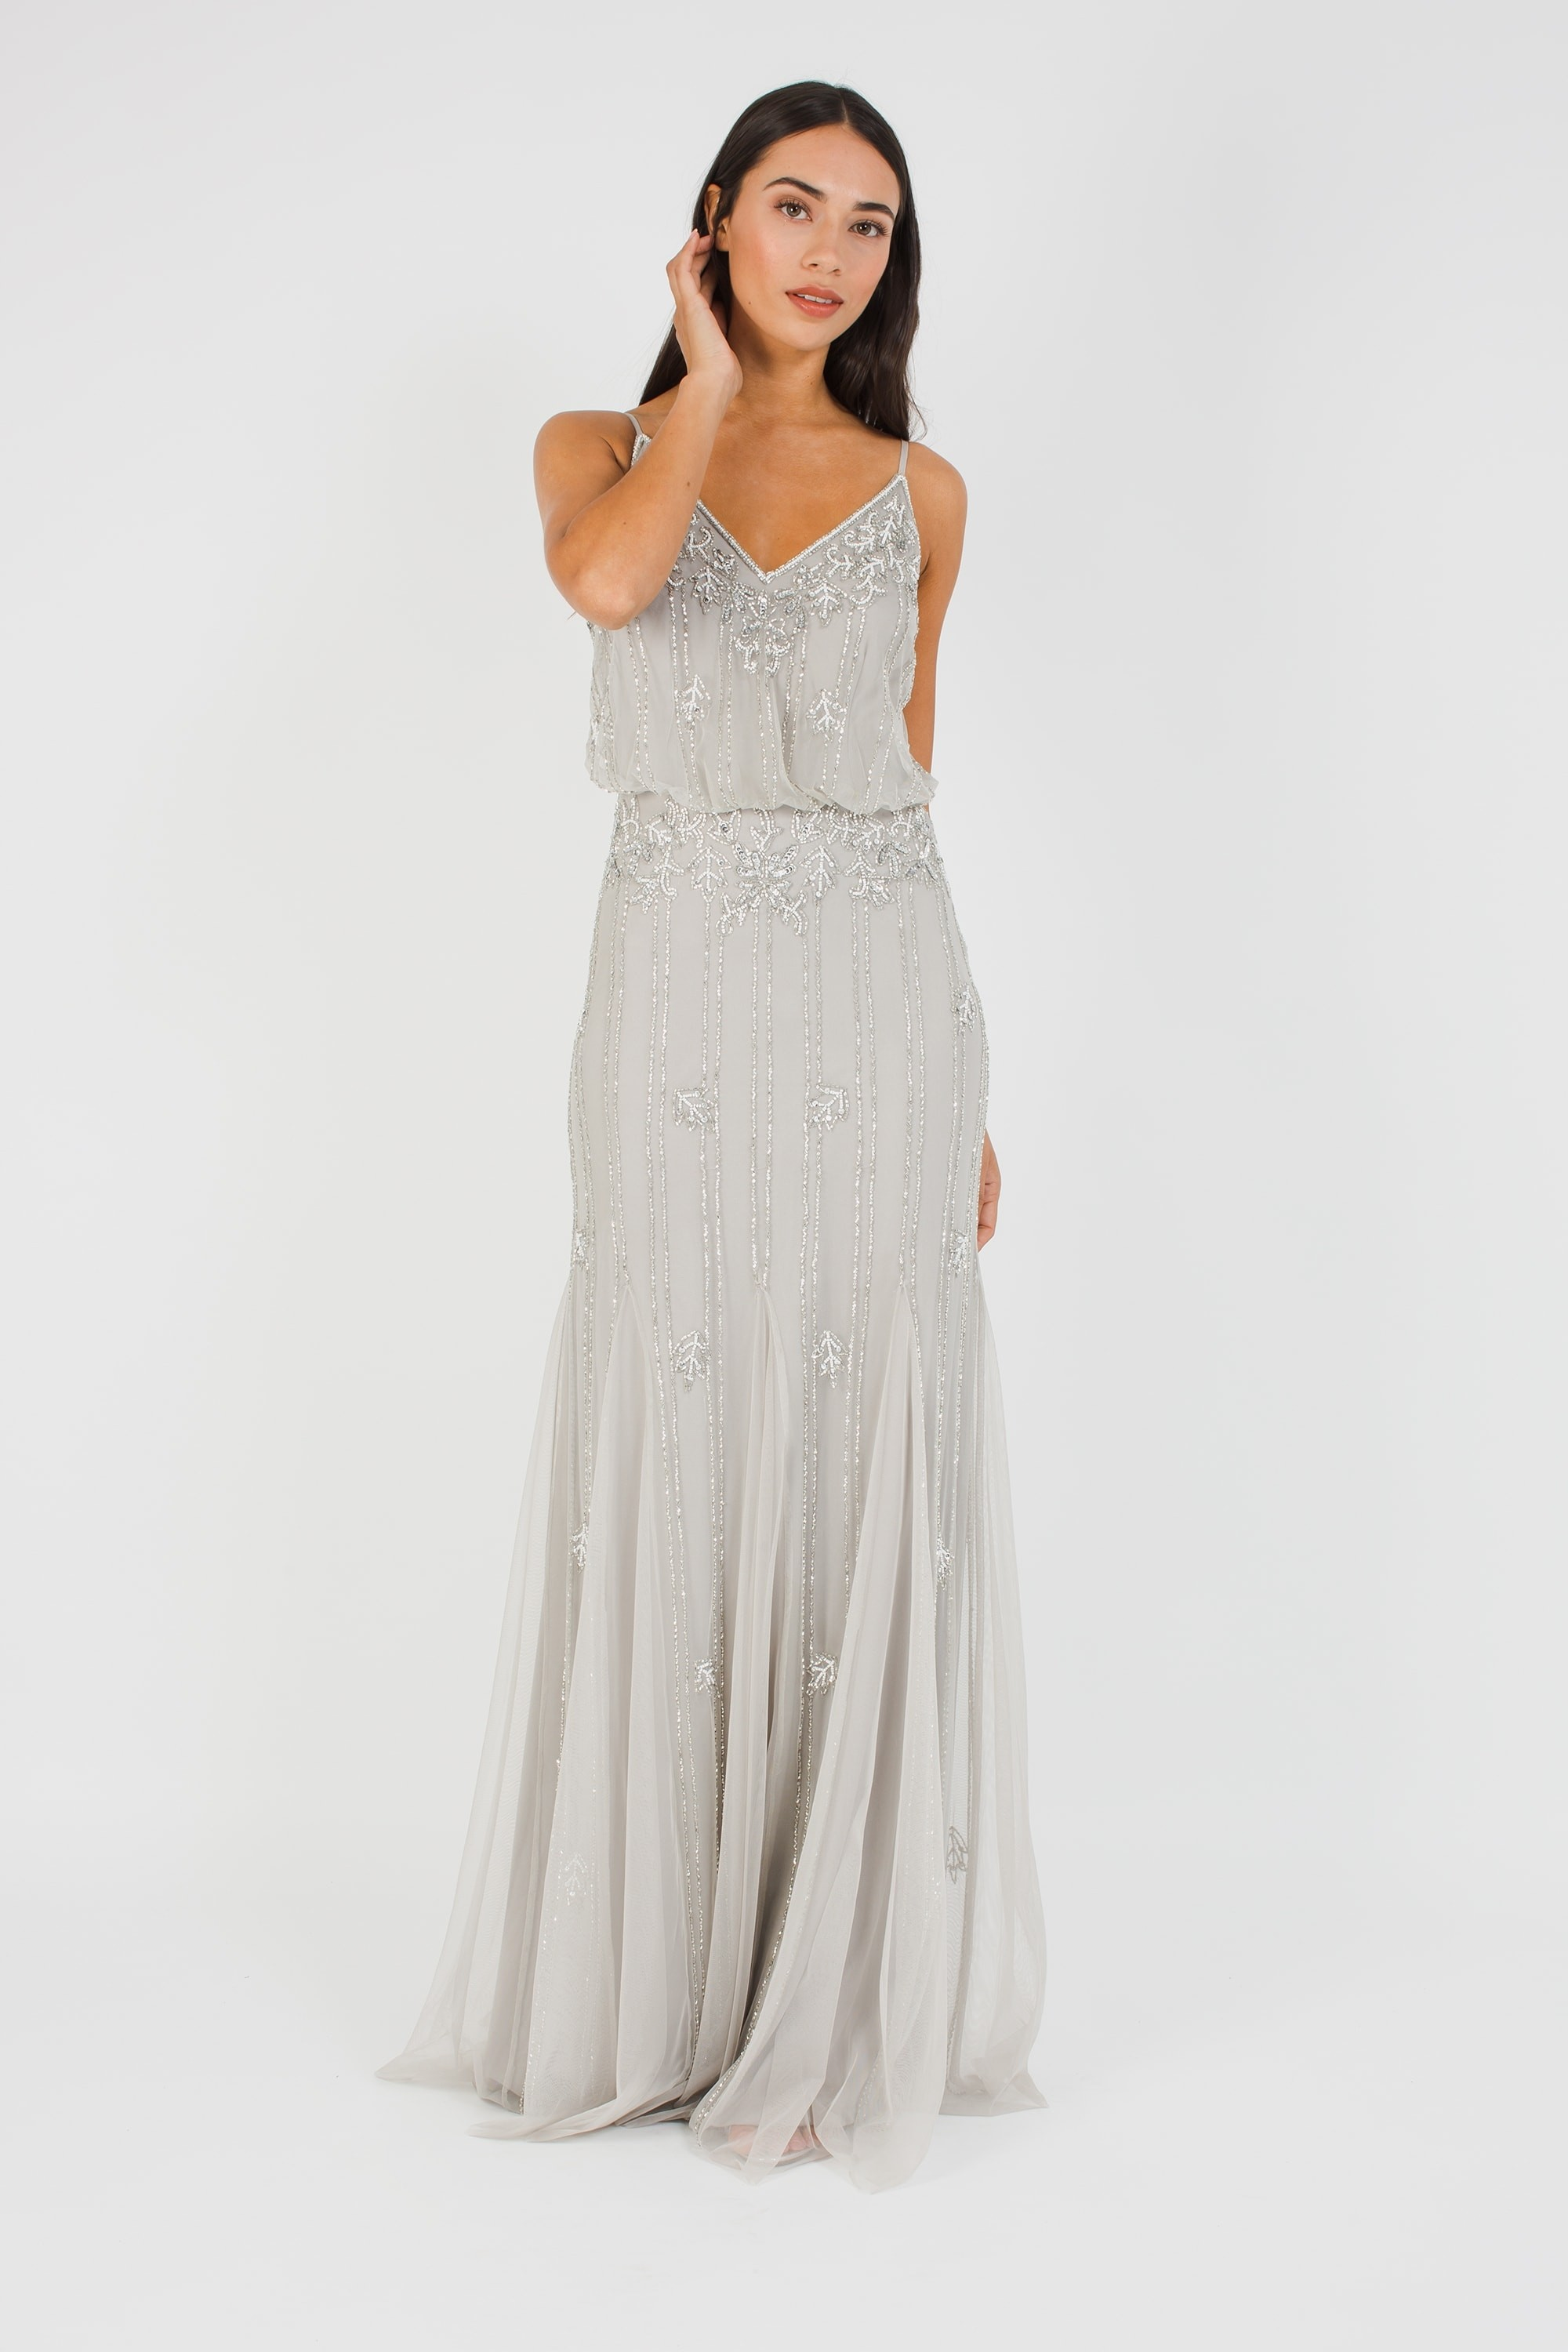 Lace Amp Beads Keeva Light Grey Maxi Dress Lace Amp Beads Party